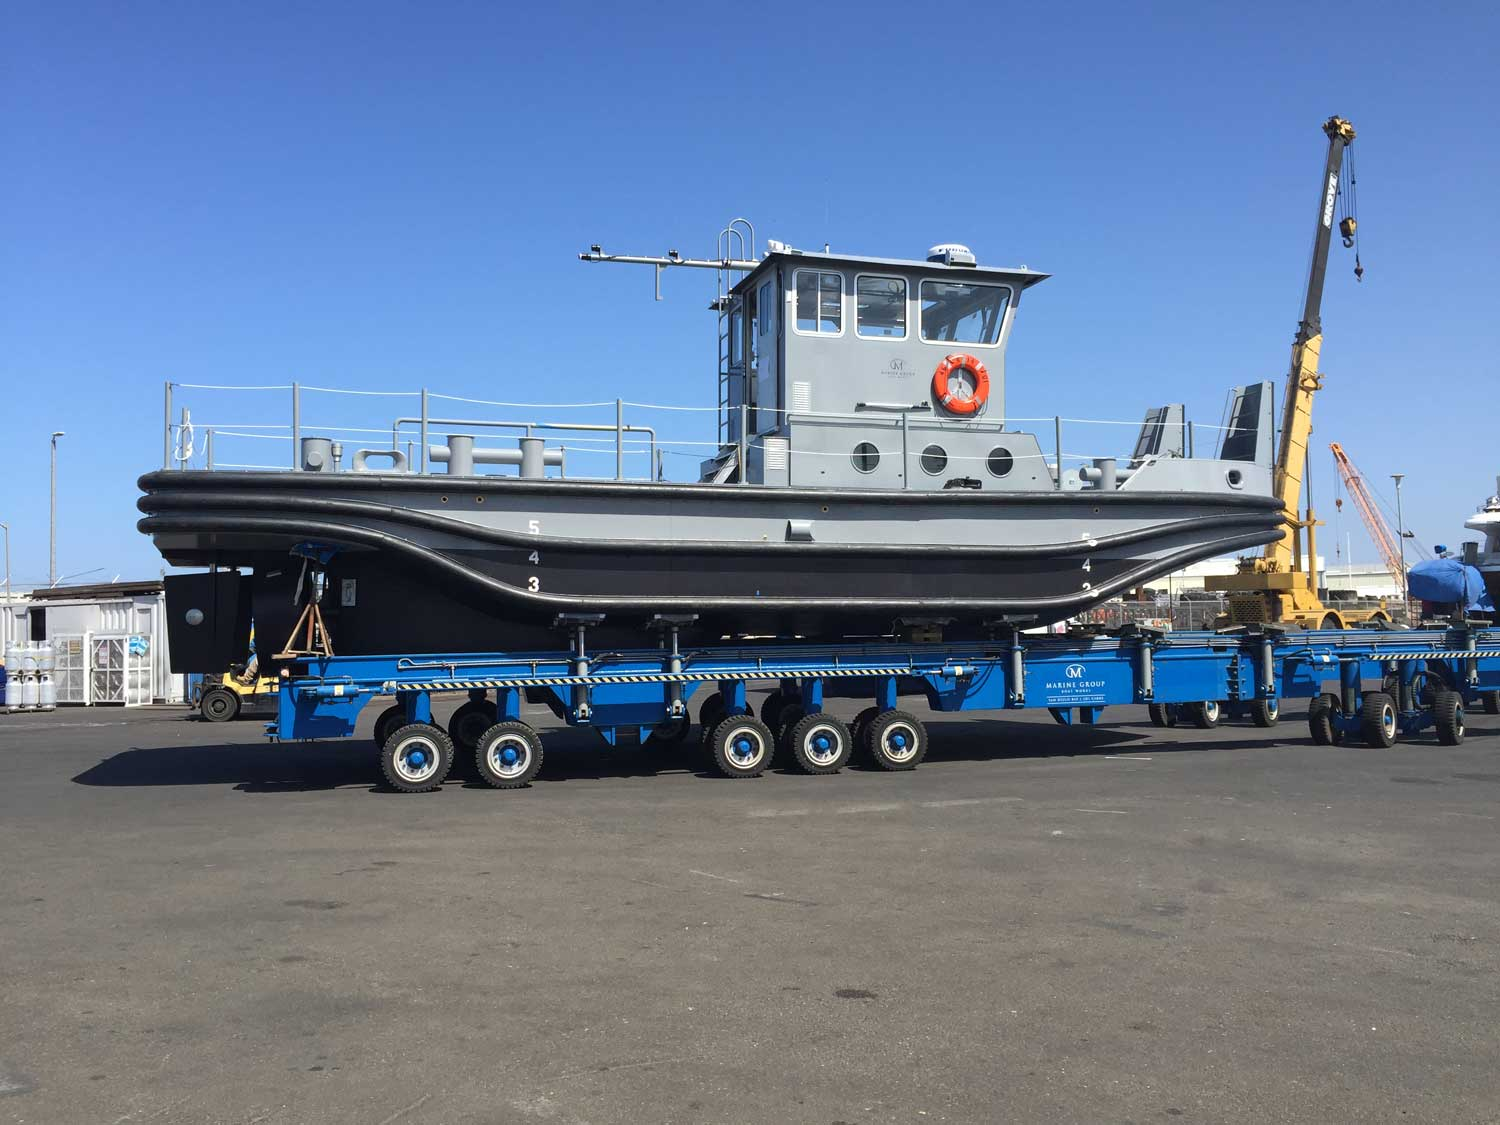 New construction boat out of water